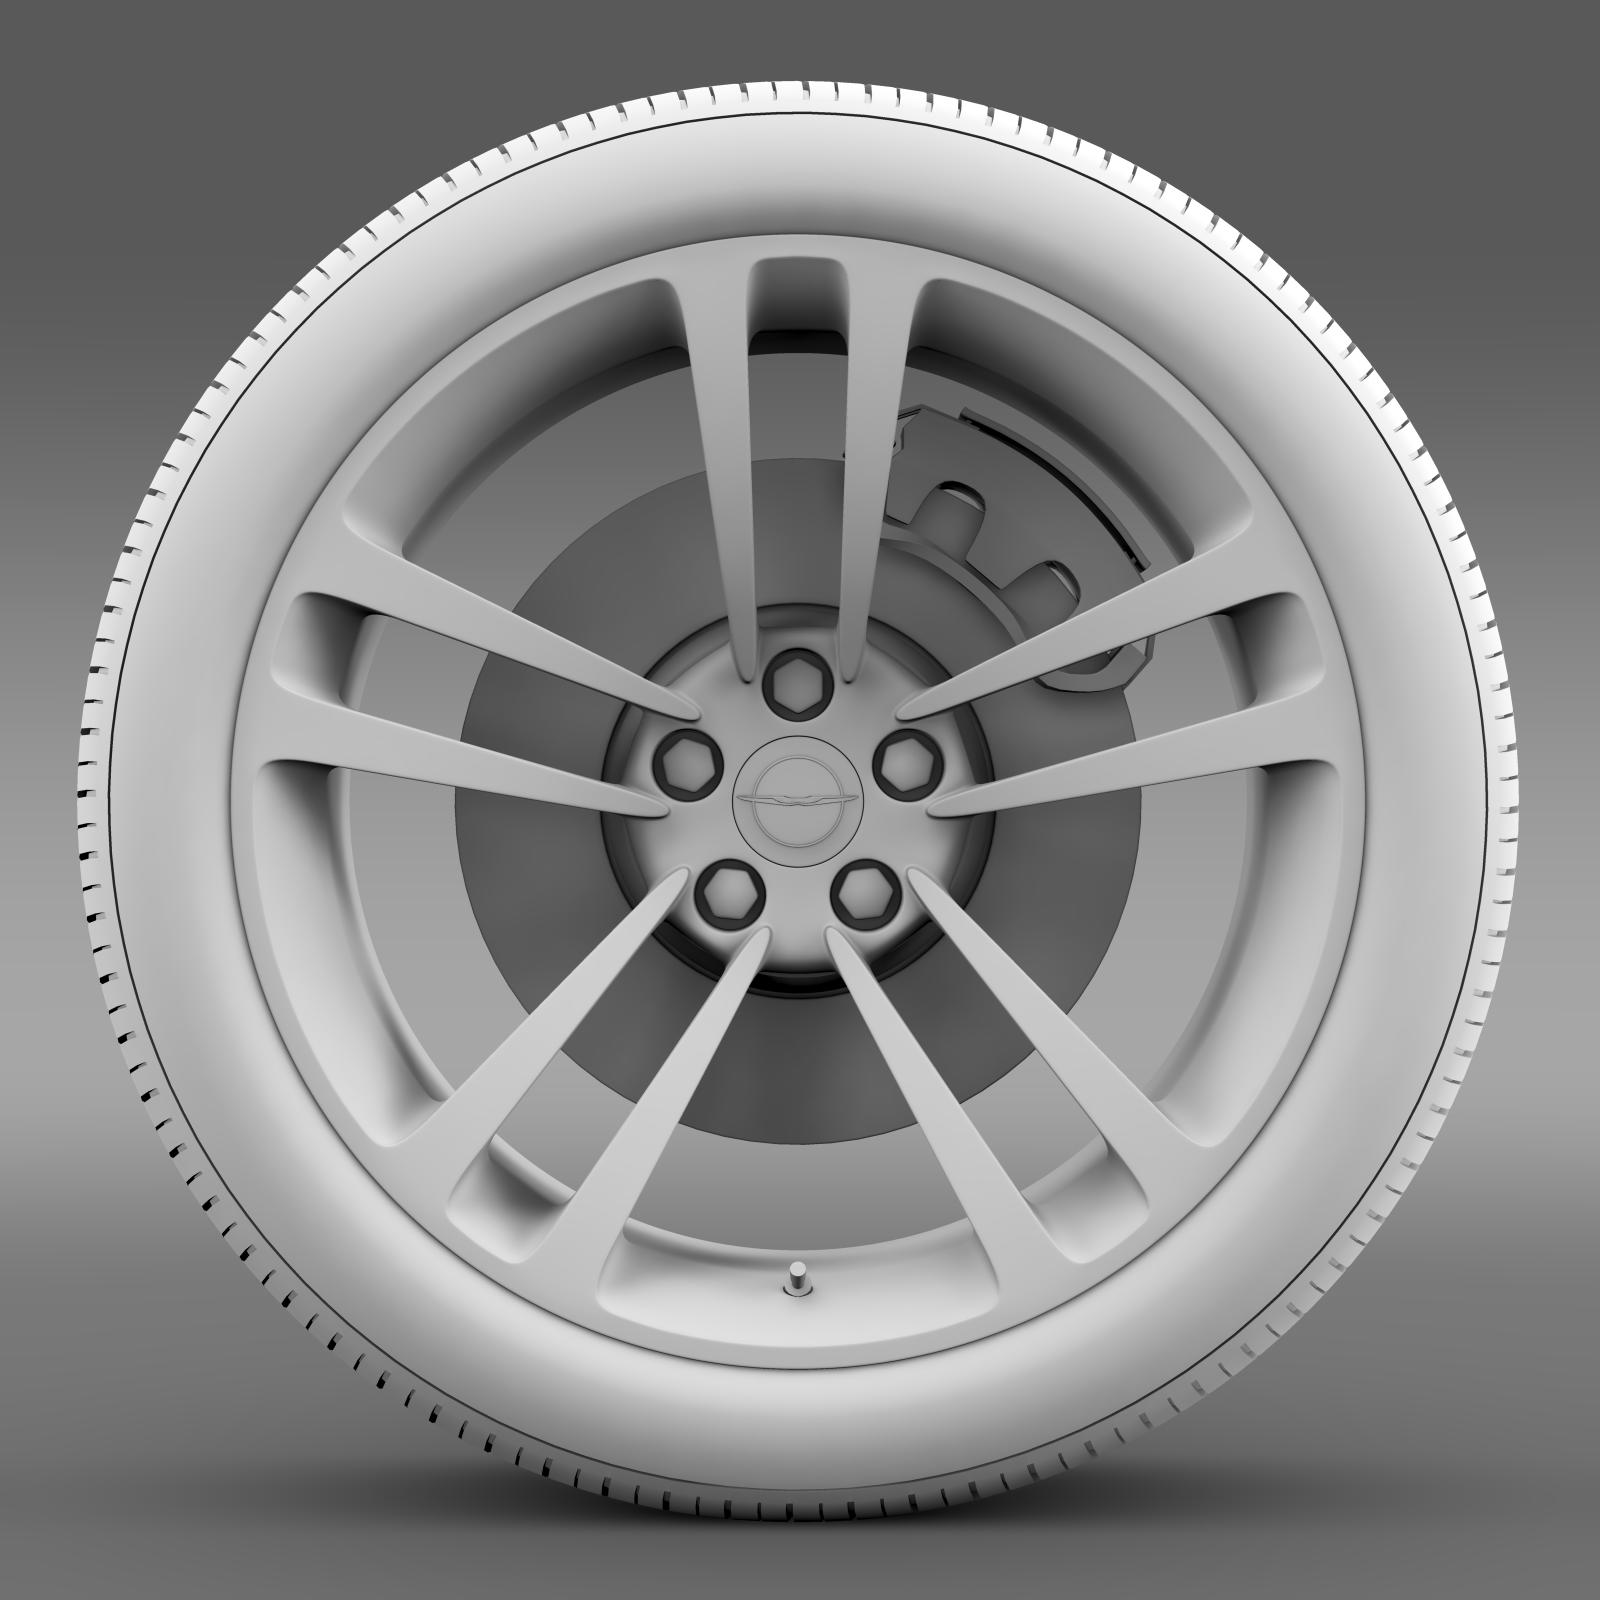 chrysler 300 srt8 core wheel 3d model 3ds max fbx c4d lwo ma mb hrc xsi obj 210633